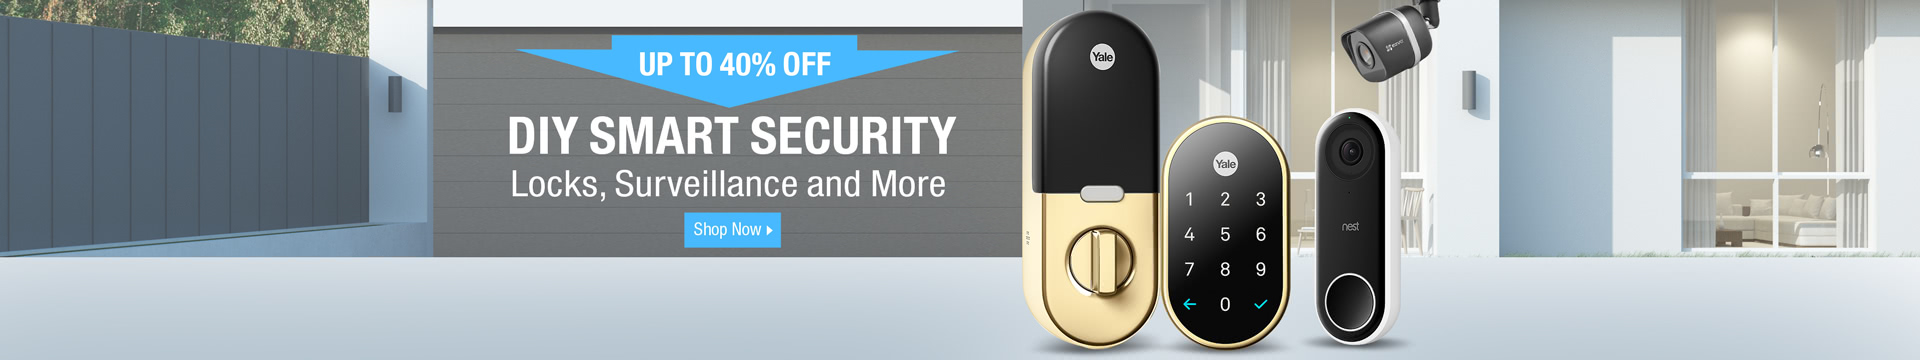 Voip Philippines Smart Security System — Totoku